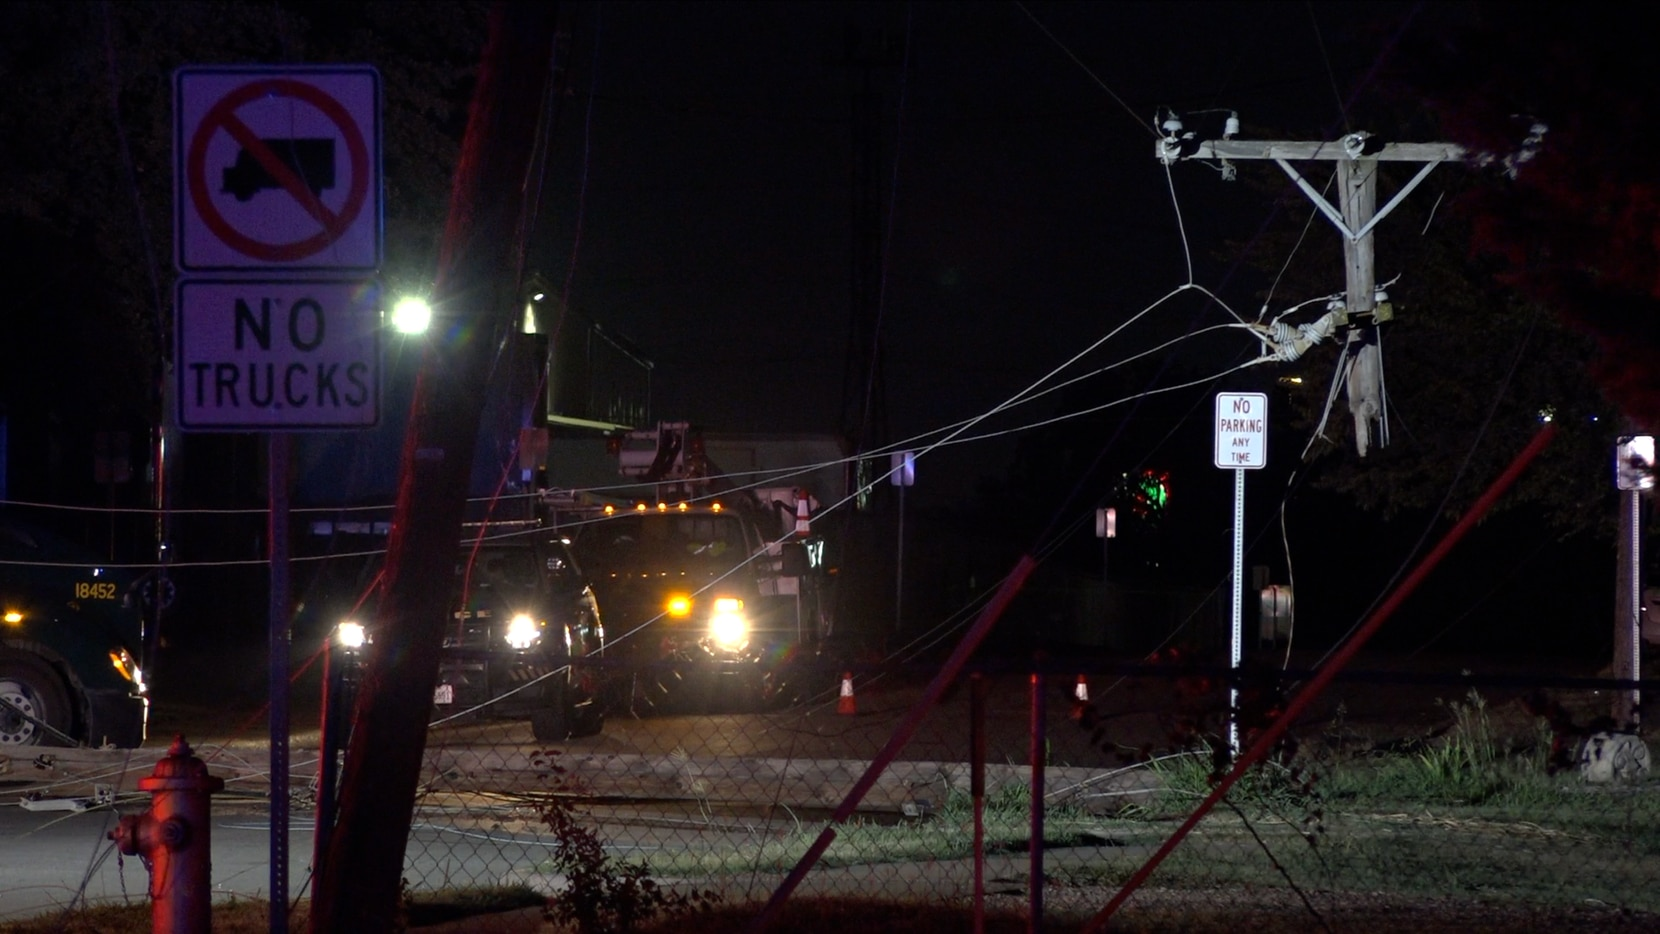 Damaged power lines are visible in Irving after an 18-wheeler knocked down four utility poles in a residential area Monday night.